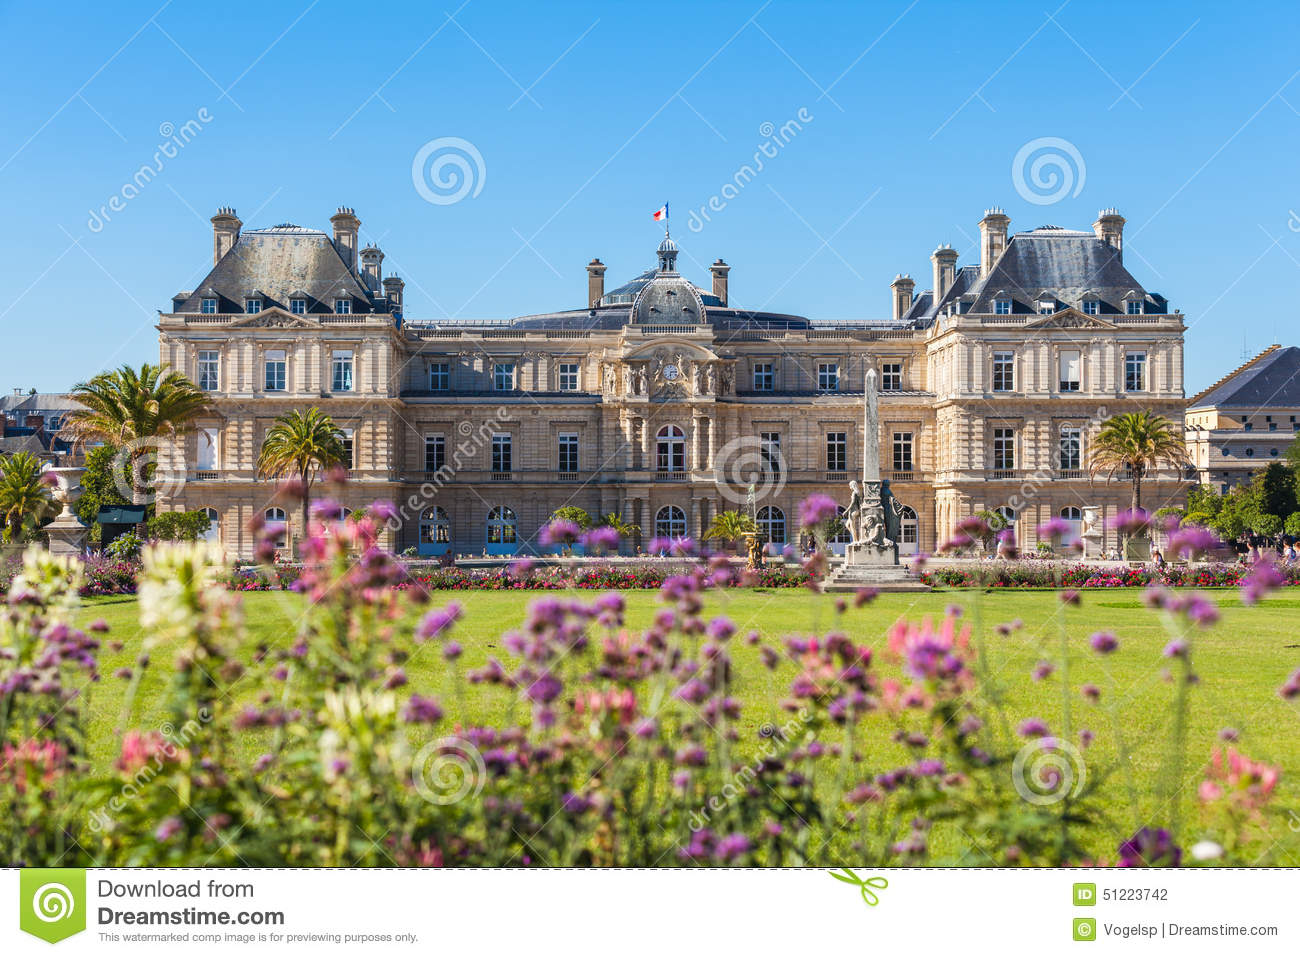 Luxembourg Palace In Jardin Du Luxembourg Stock Photo.